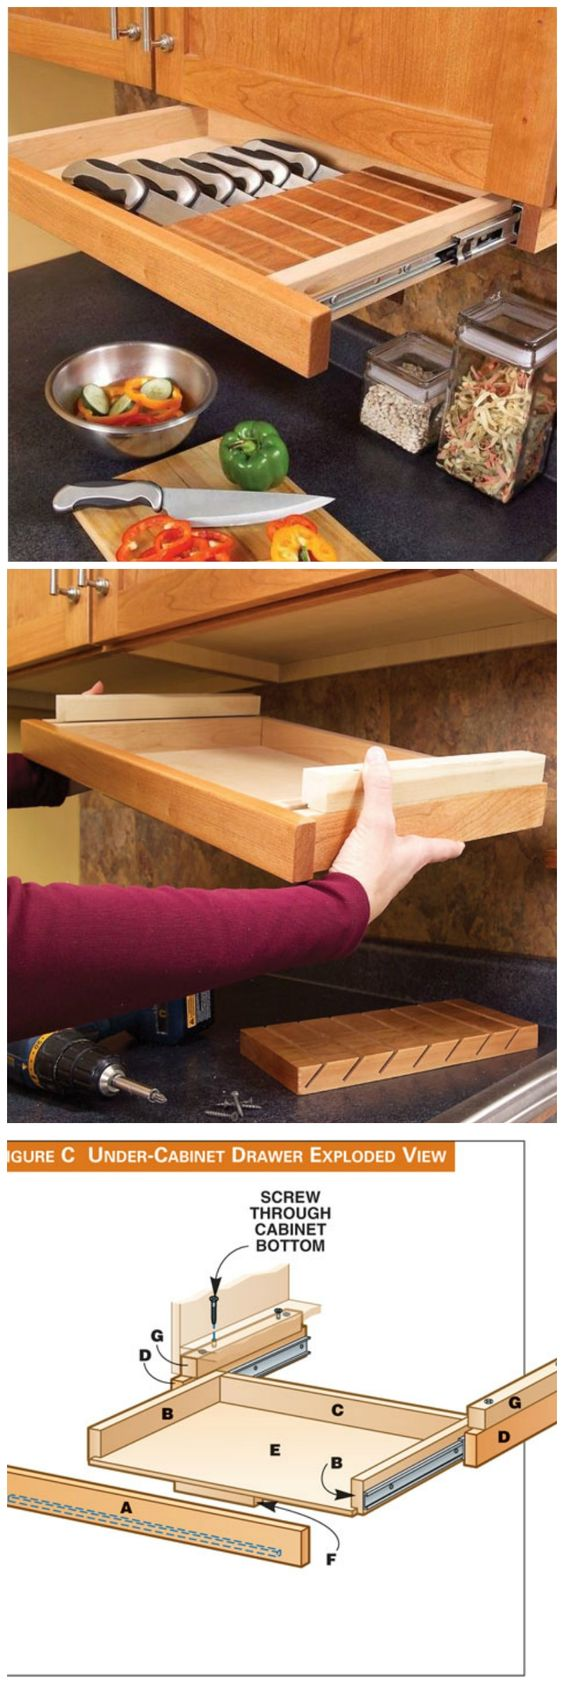 Kid-Safe Under the Cabinet Knife Drawer